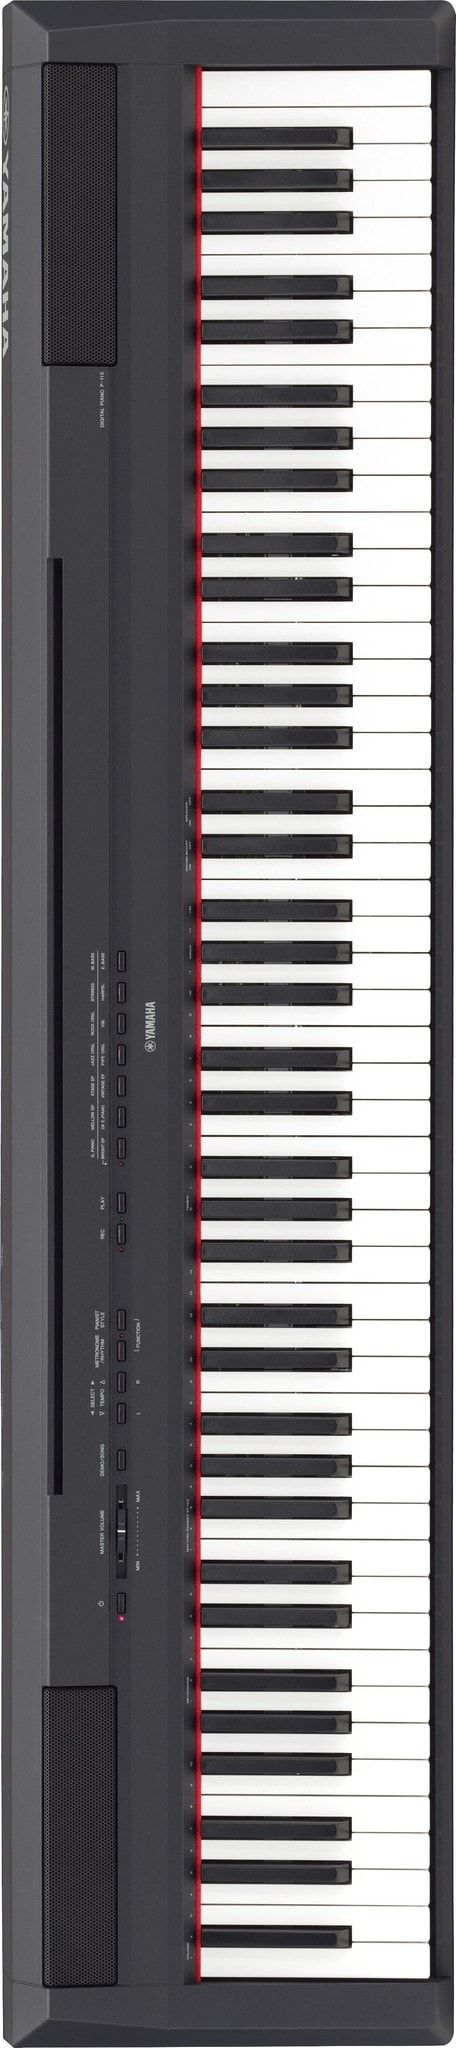 The P-115, Yamaha's follow-up to the industry's best-selling digital piano, now has its own app for iOS. An elegant touch screen controller that makes getting to the features of the P-115 simple. Pian